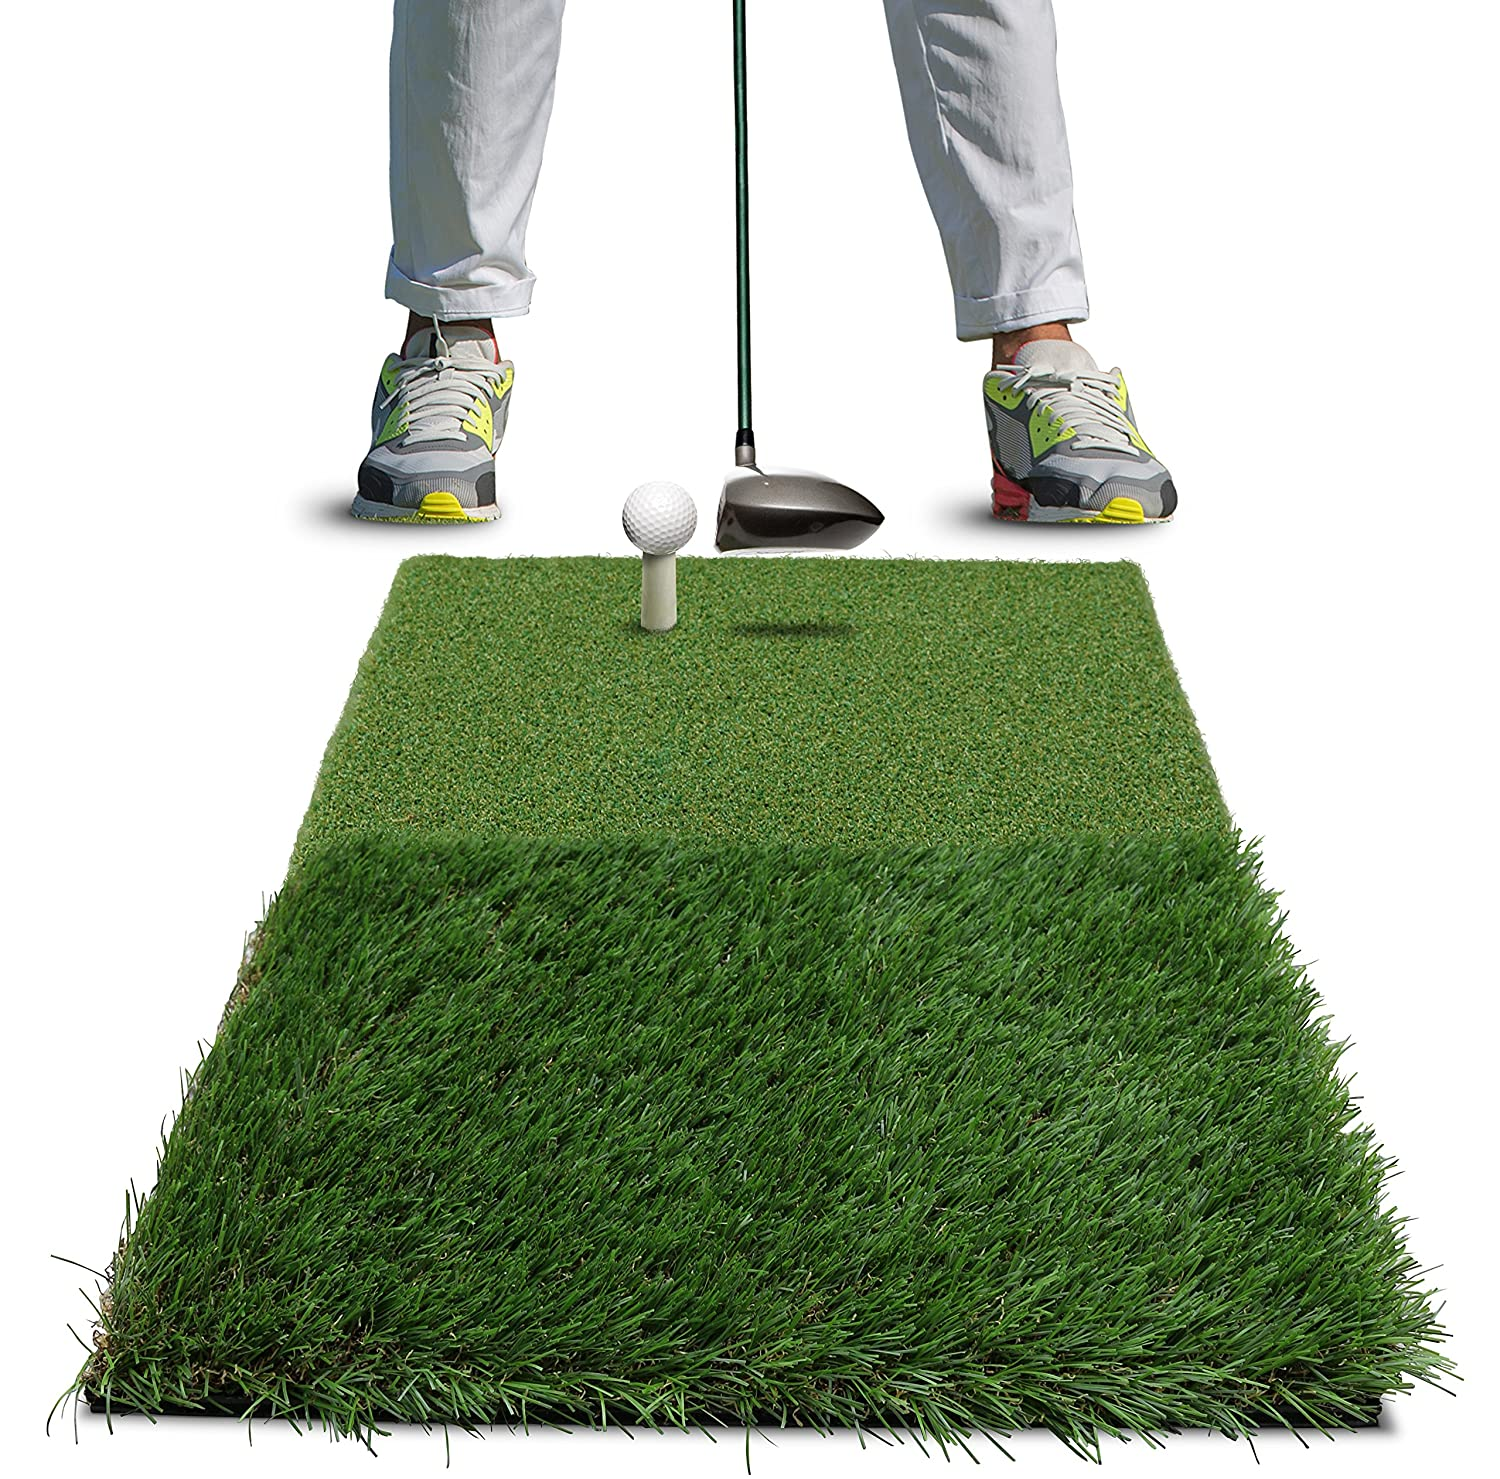 mat these mats ball indoor practice durapro perfect driving golf green chipping pin hitting swing for net and putting striking aids